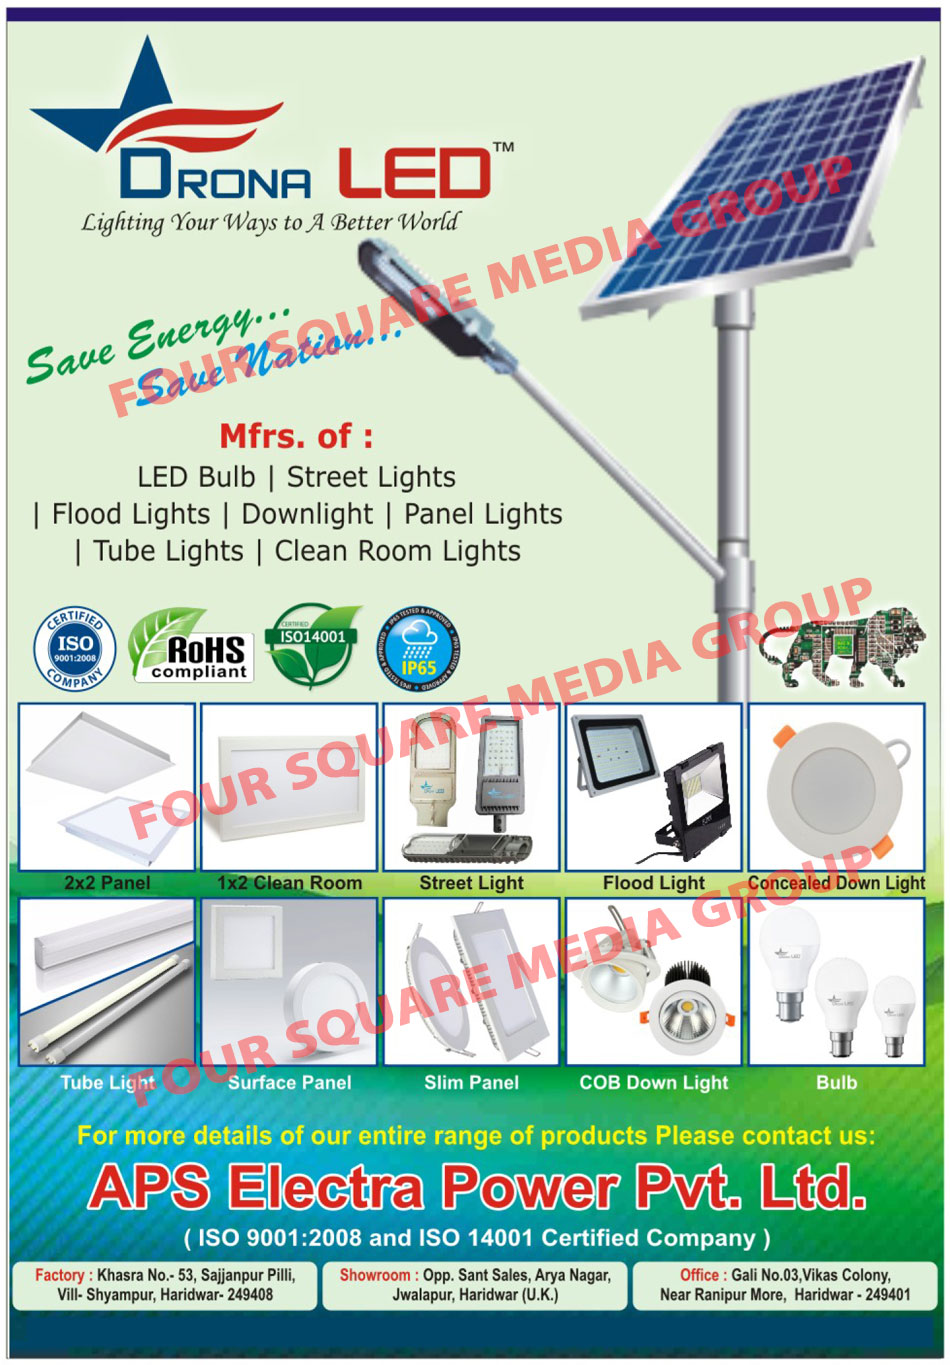 Led Lights, Led Bulbs, Street Lights, Flood Lights, Down Lights, Downlights, Panel Lights, Tube Lights, Clean Room Lights, Concealed Down Lights, Tube Light Surface Panels, Surface Panel Lights, Slim Panels, Slim Panel Lights, COB Down Lights